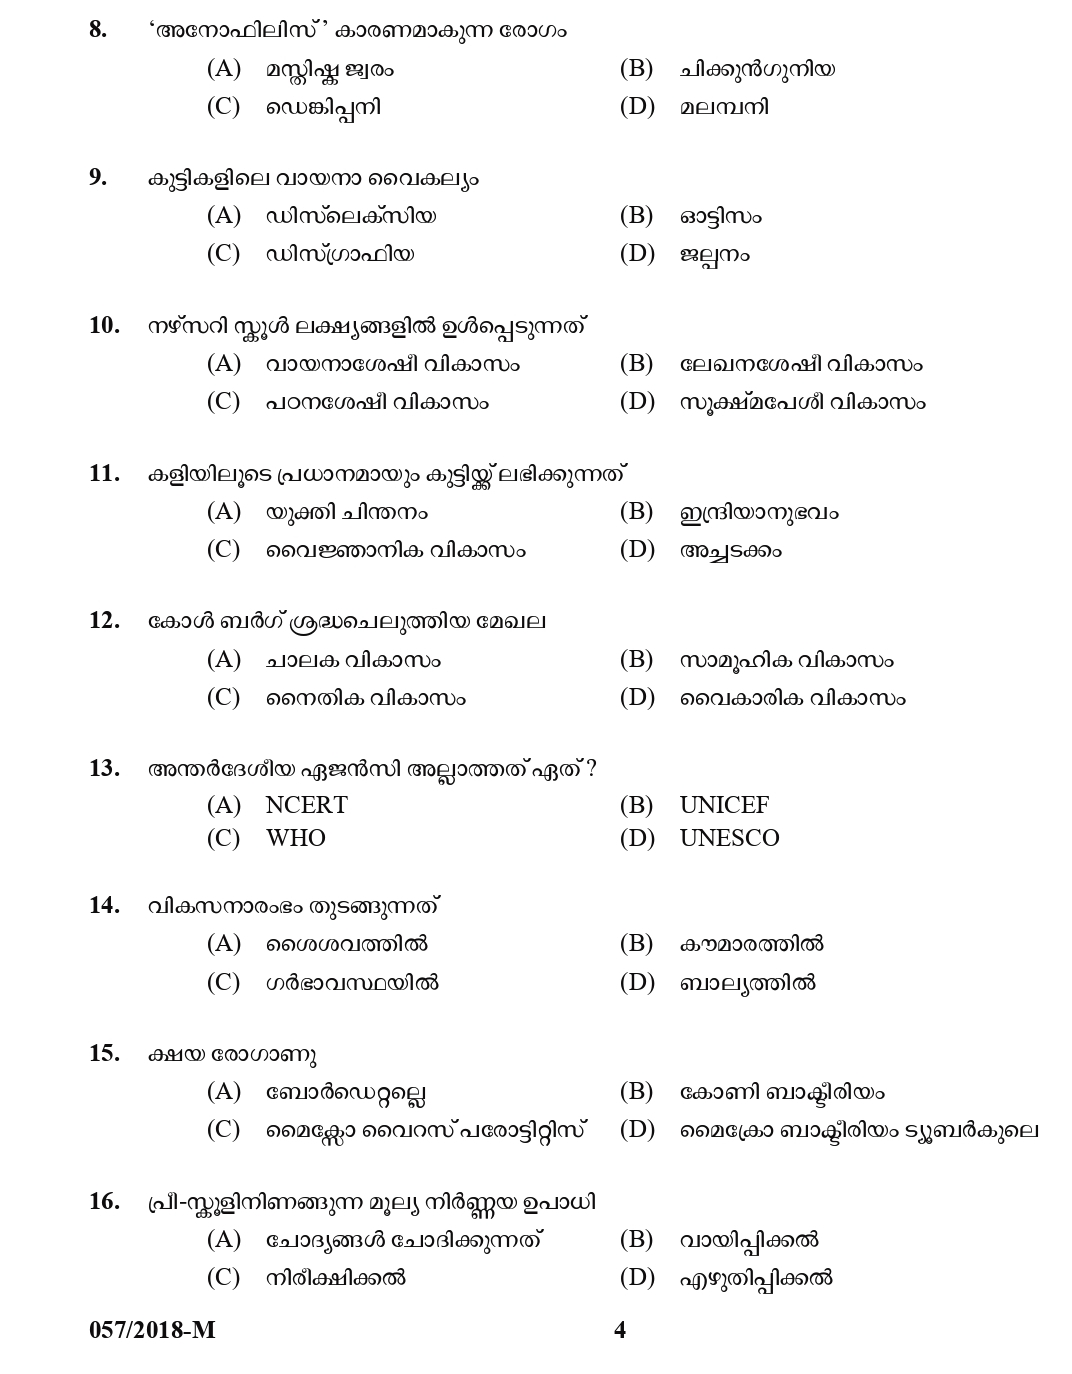 https://www.pscthriller.com/2019/07/kerala-psc-previous-question-papers-with-answer-key.html